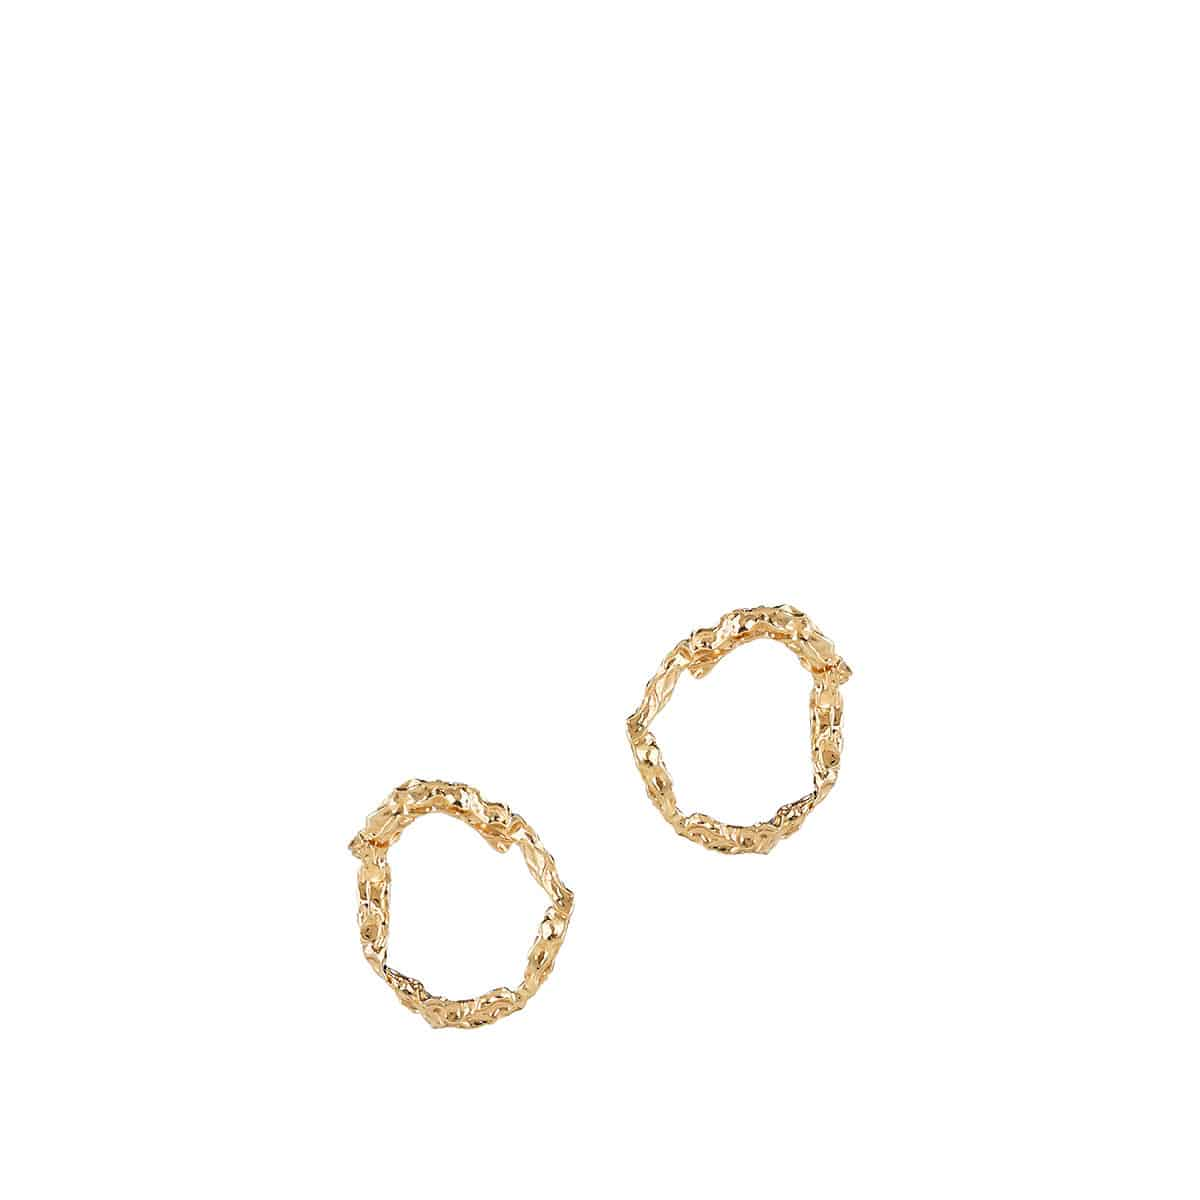 Annouk brass earrings